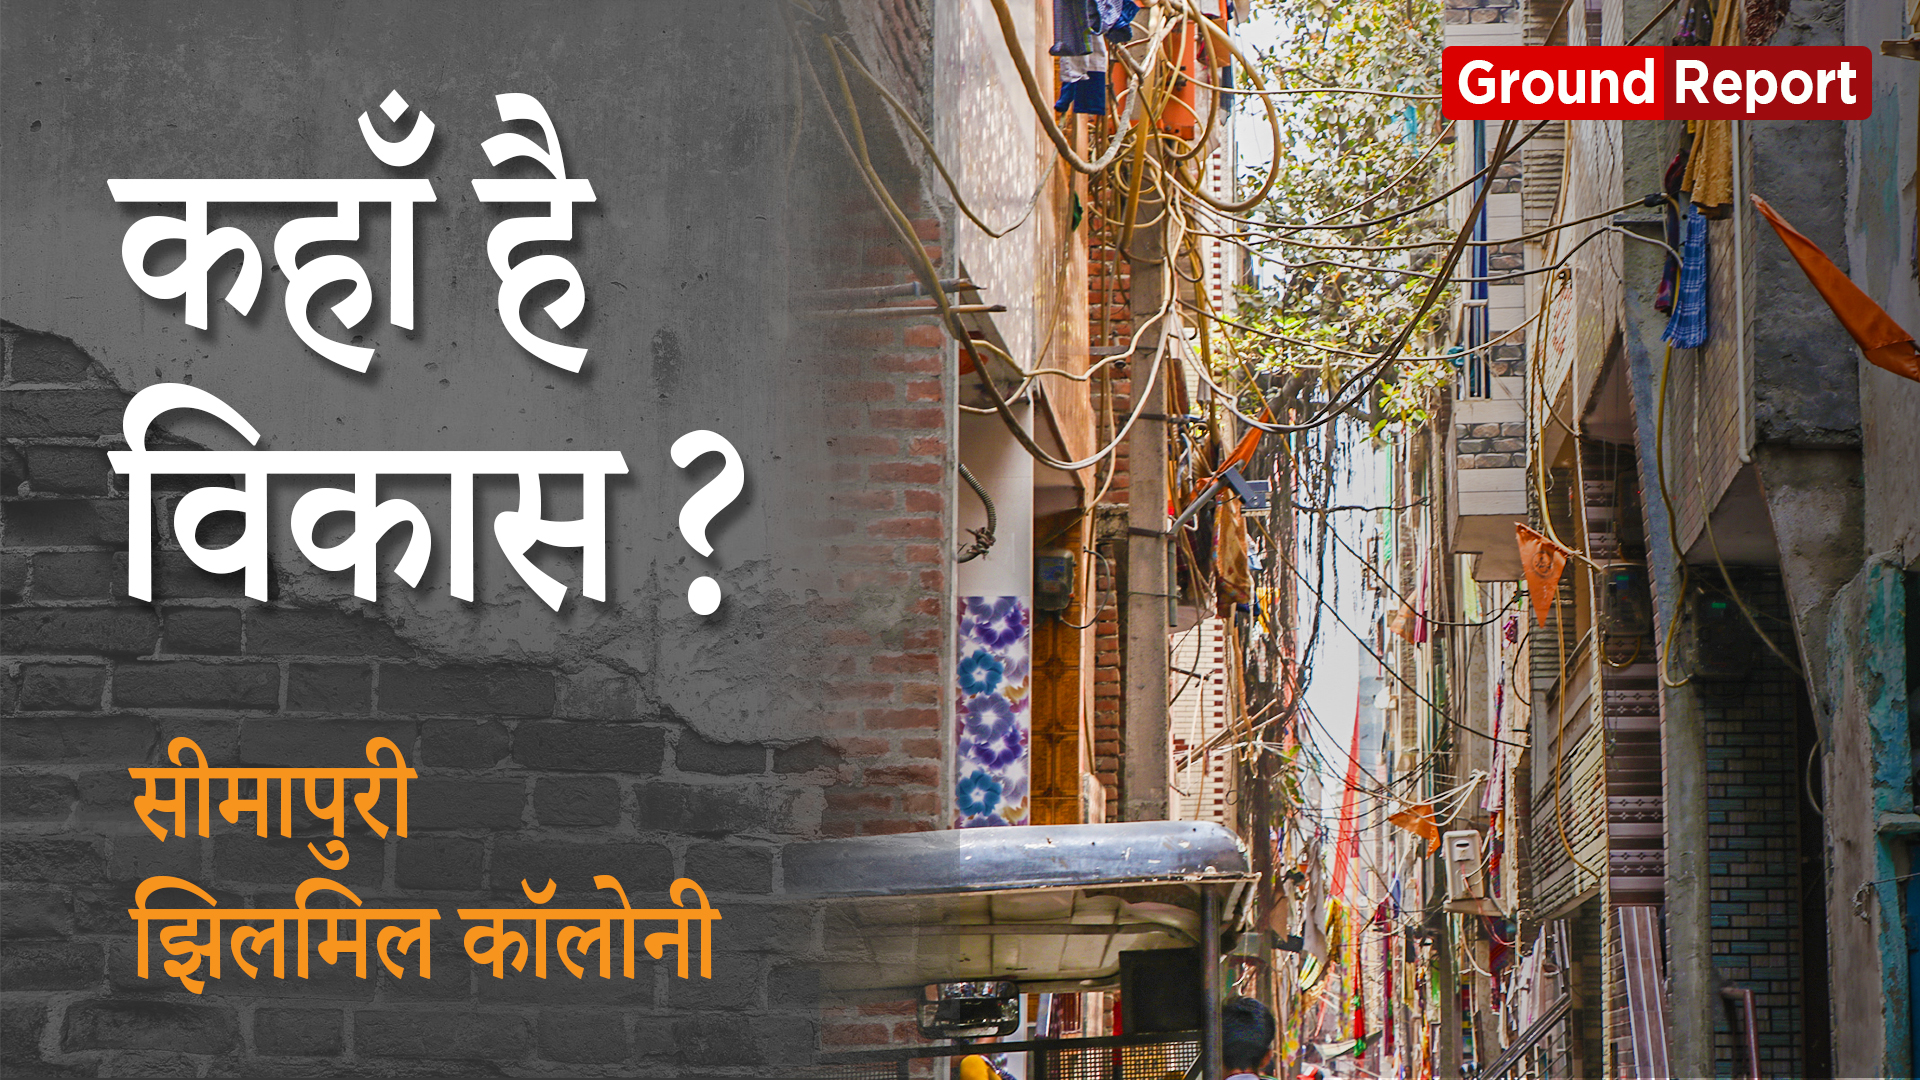 #DelhiElection2019: Where Is Development?